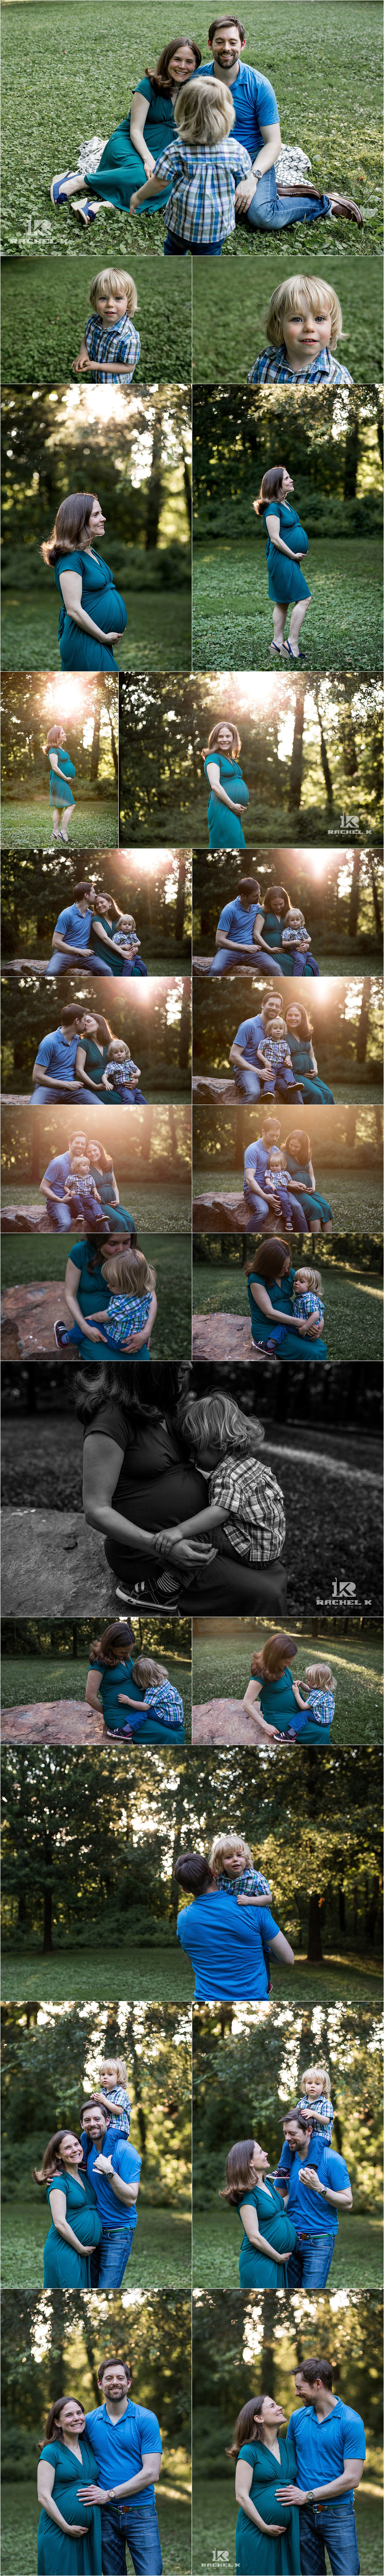 Northern Virginia maternity session with toddler